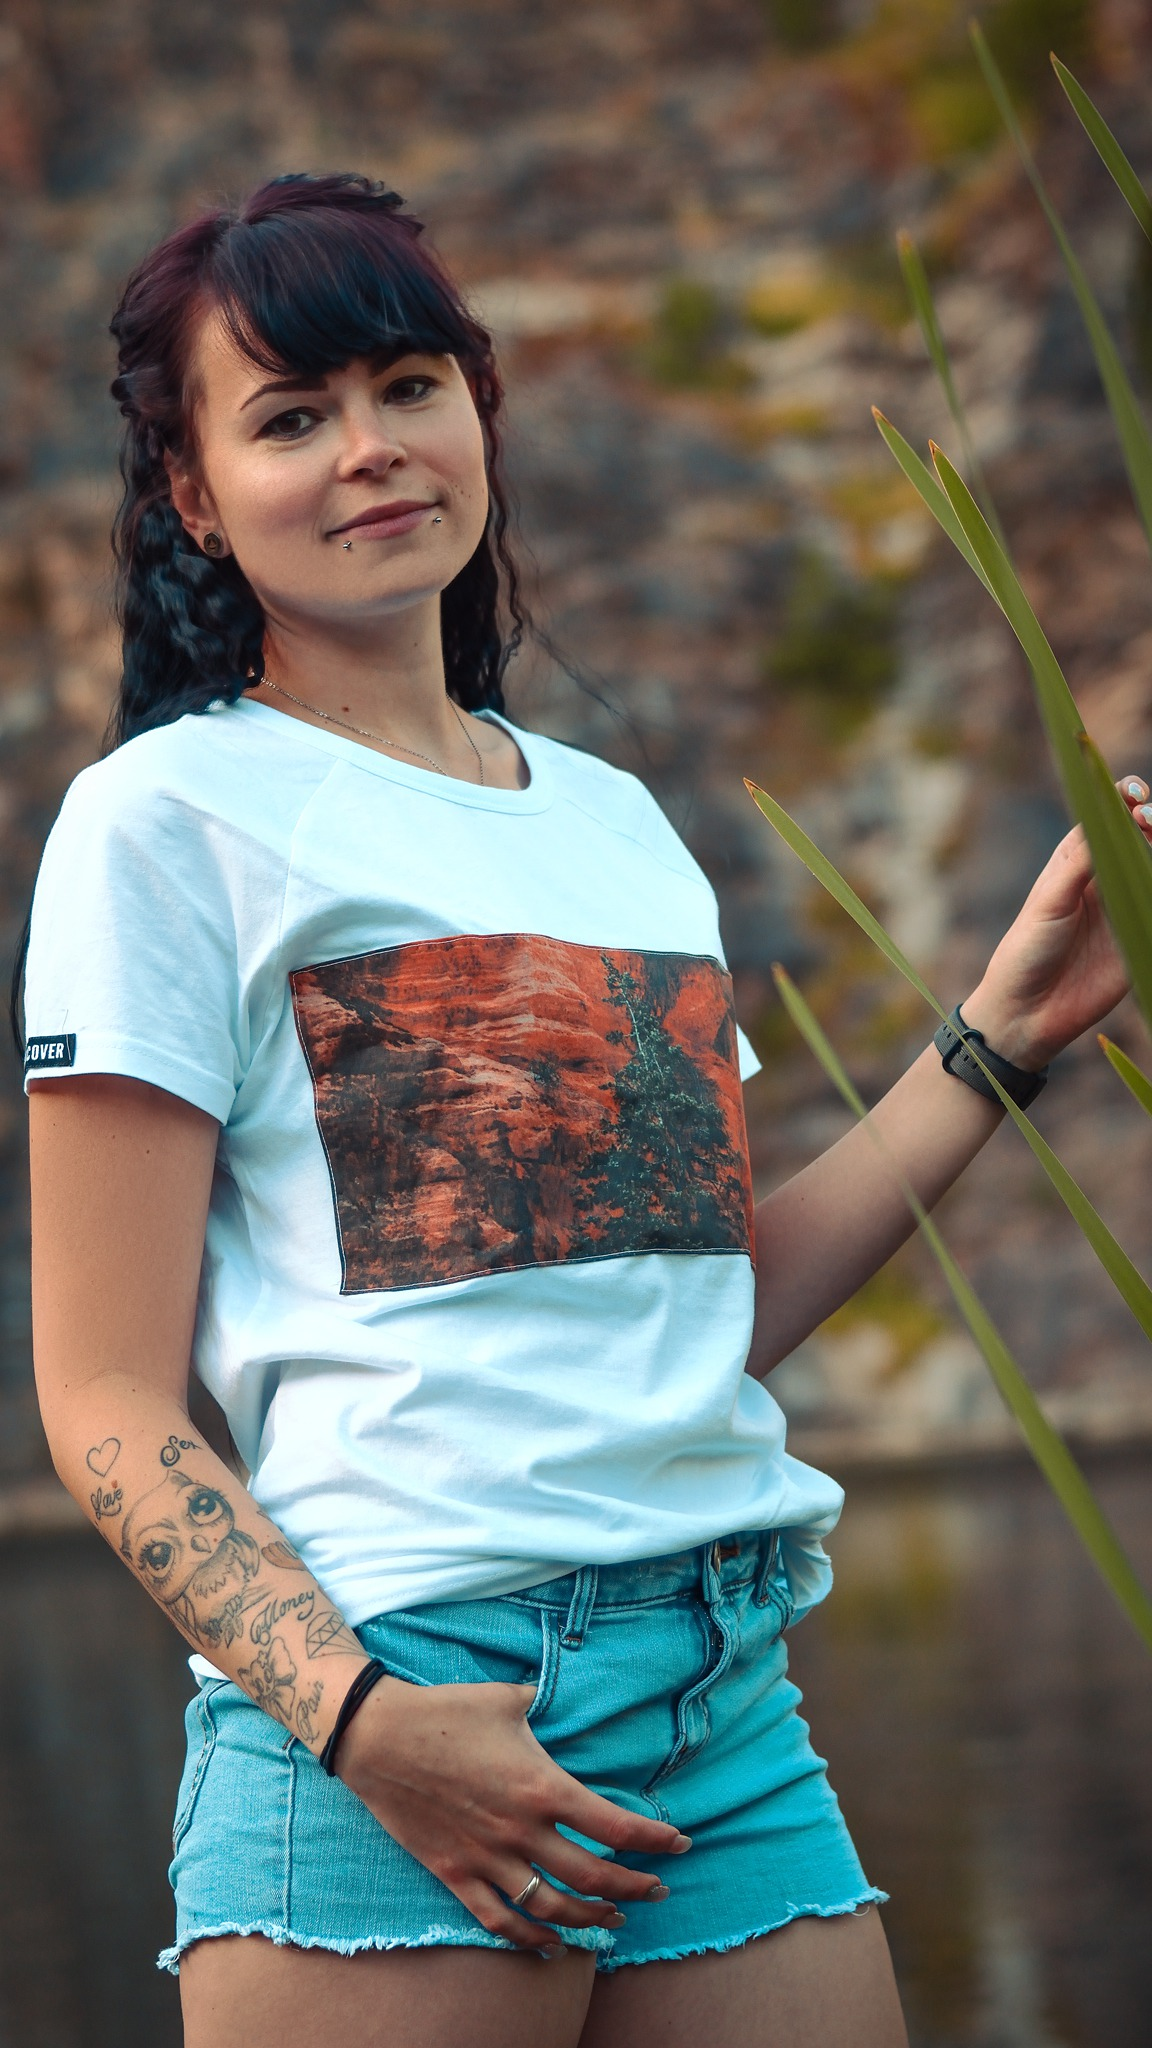 Canyon, Grand Canyon, Canyon Shirt, Canyon T-Shirt, Canyon Motiv, handvernähte Applikation, Bio-Baumwolle, Bio-Baumwolle T-Shirt, Unisex T-shirt, nachhaltiges T-Shirt, Reise T-Shirt, Weltenbummler T-Shirt, Roadtrip T-Shirt,